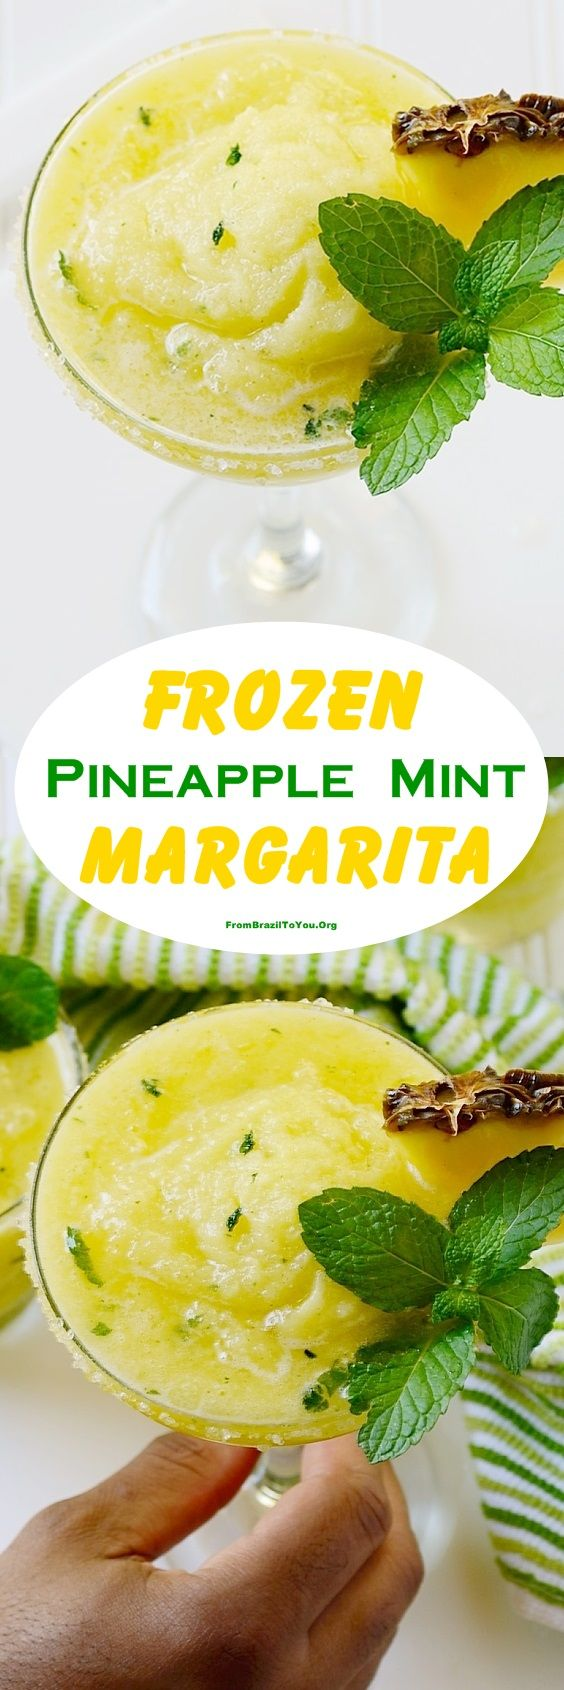 SLUSHY Frozen Pineapple Mint Margarita -- made with frozen pineapple chunks, mint, tequila, sugar, and ice... to celebrate Cinco de Mayo, parties, or no occasion at all. So gooood!!!